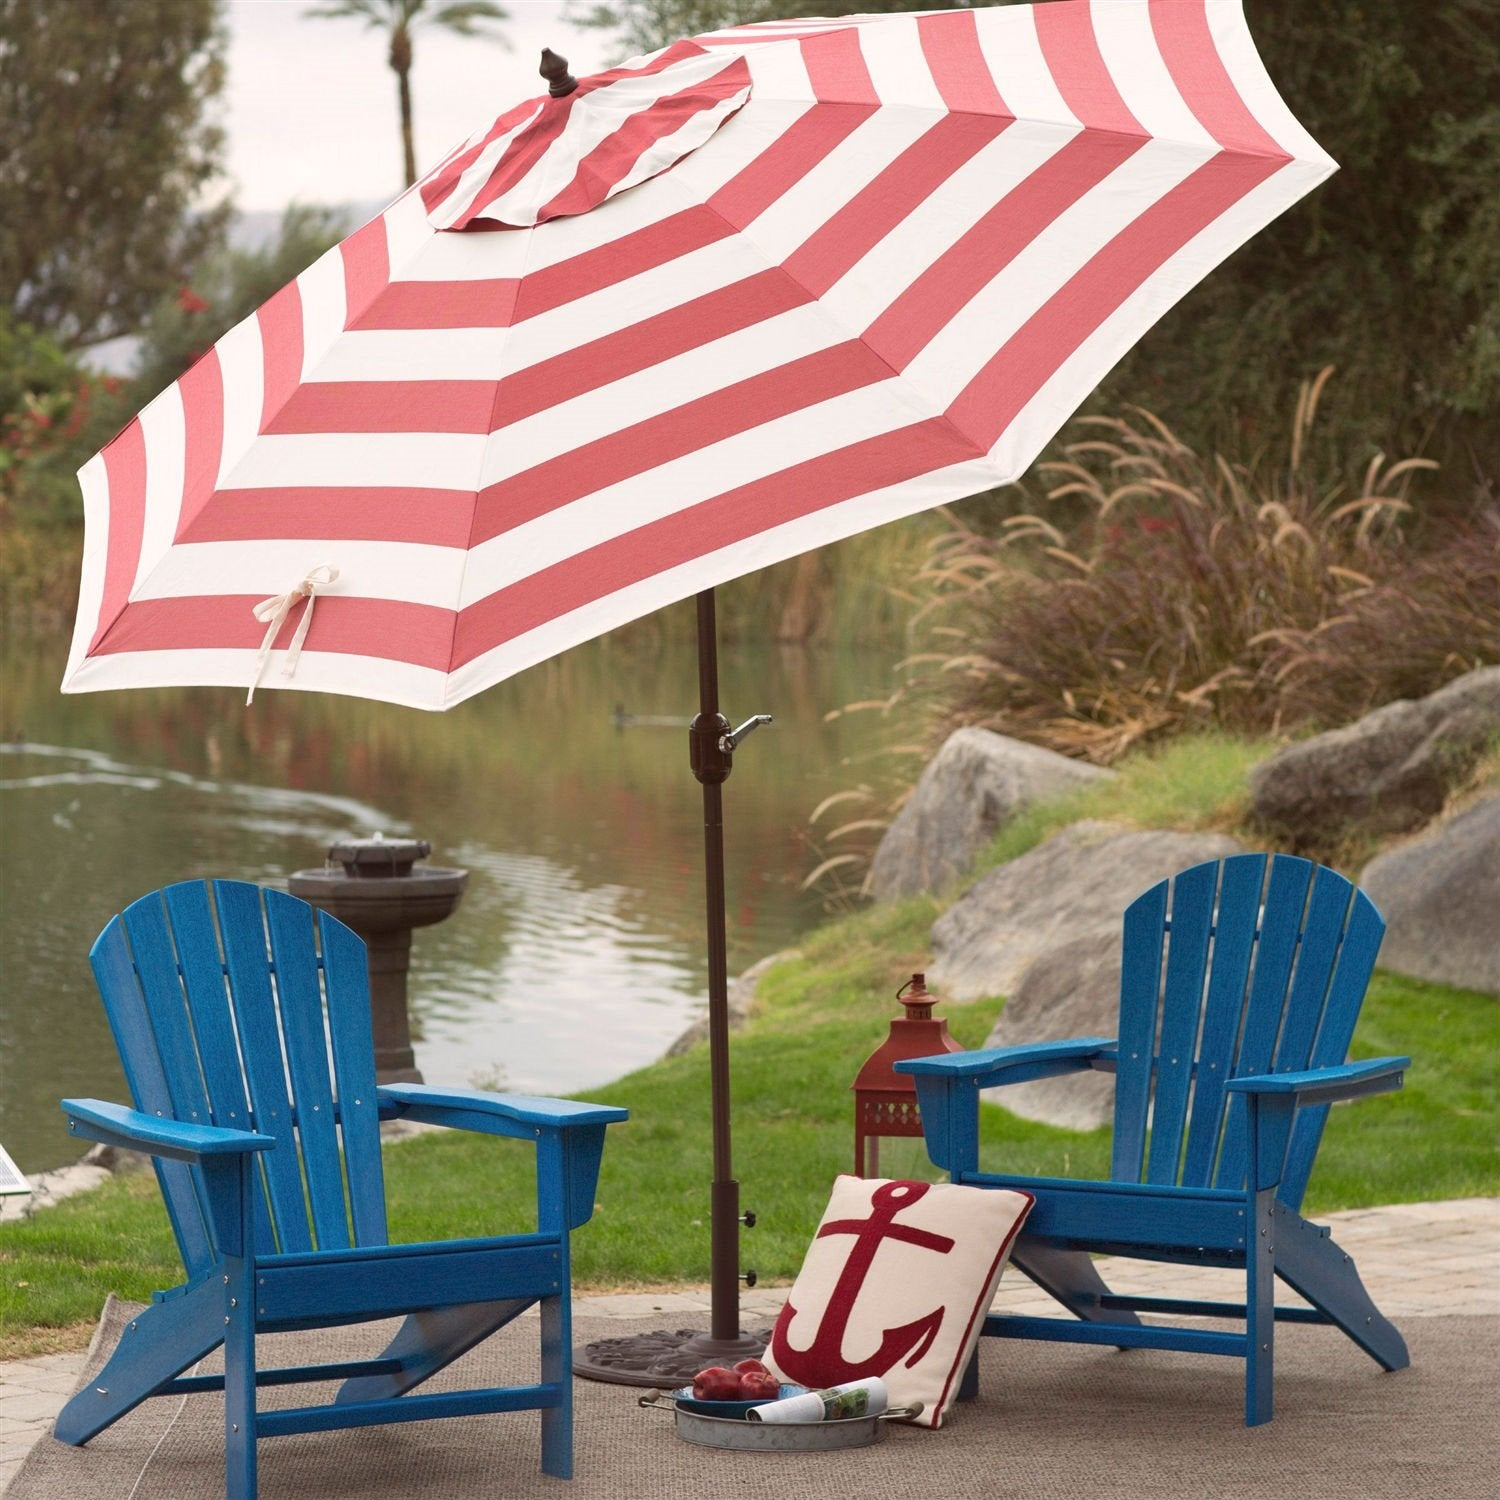 Outdoor 9-Ft Patio Umbrella with Tilt and Crank Lift in Coral Red White Stripe